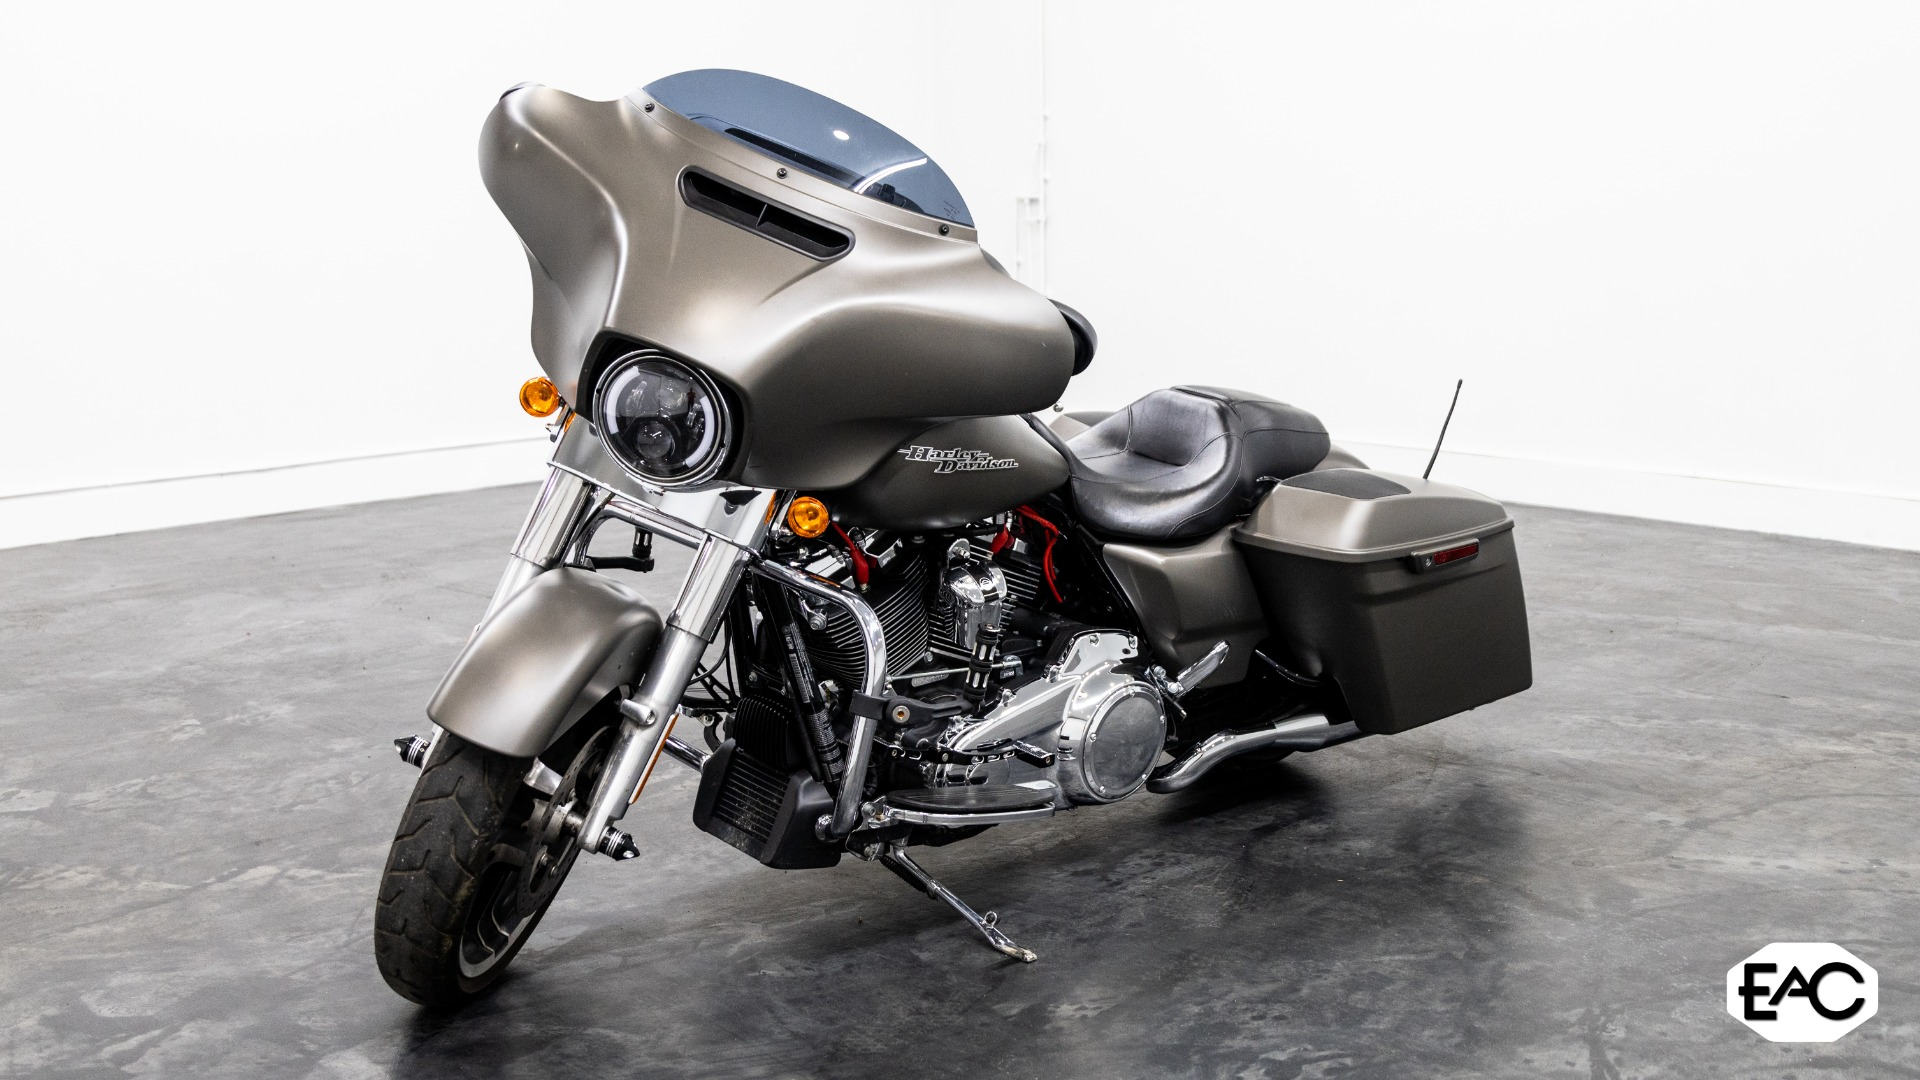 Used 2018 HARLEY DAVIDSON FLHX STREET GLIDE for sale $21,990 at Empire Auto Collection in Warren MI 48091 1